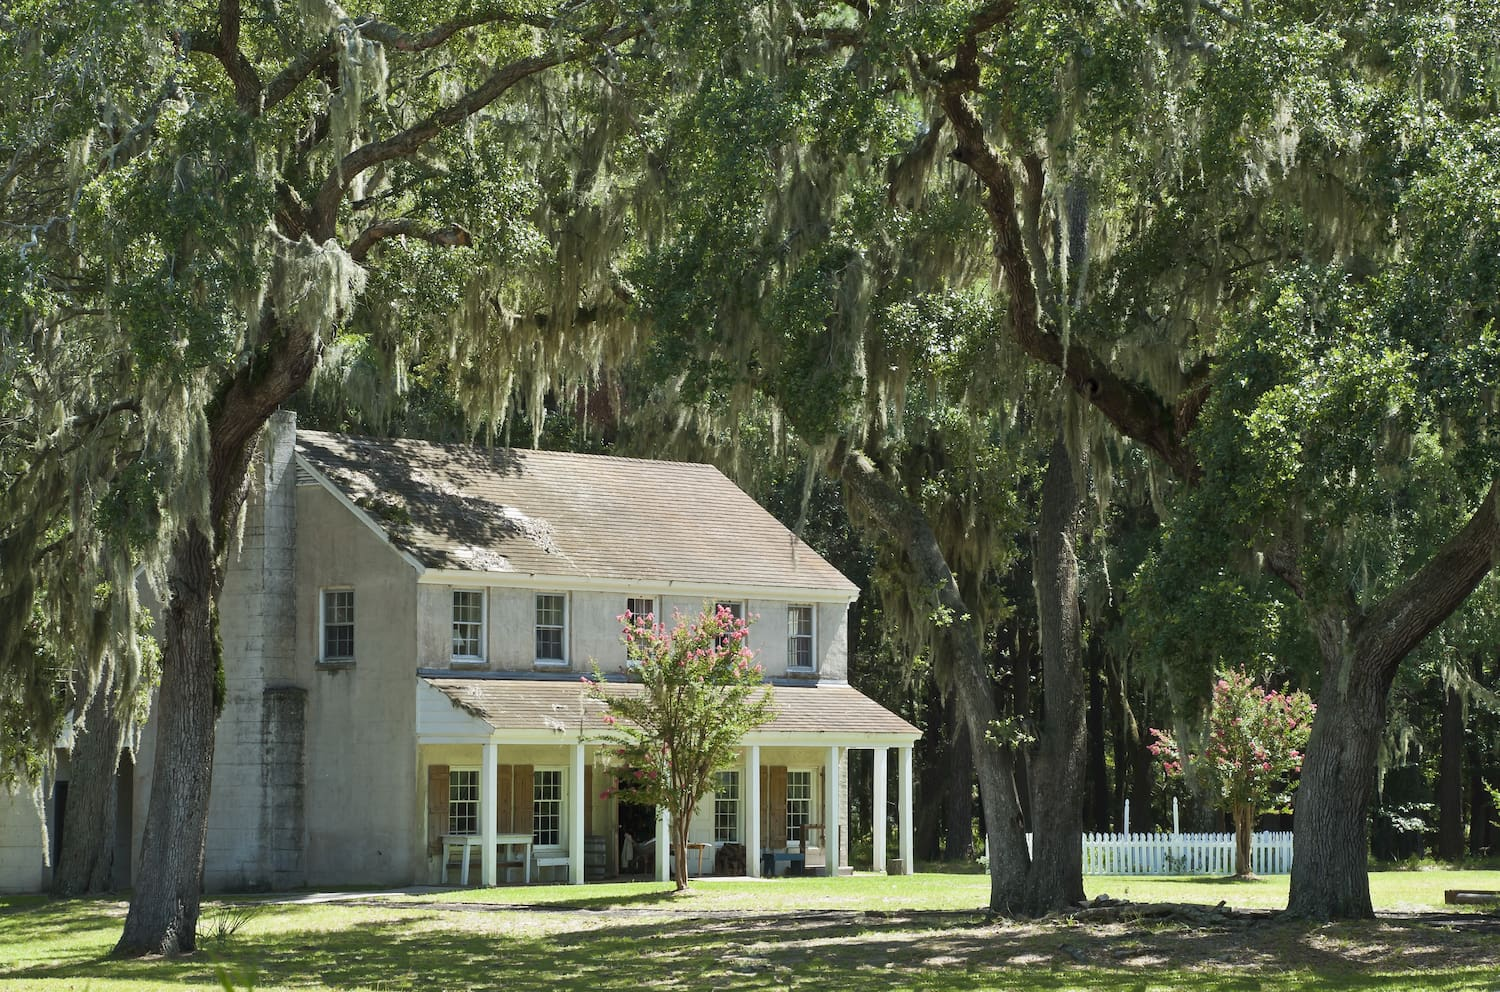 civil war era building surrounded by trees